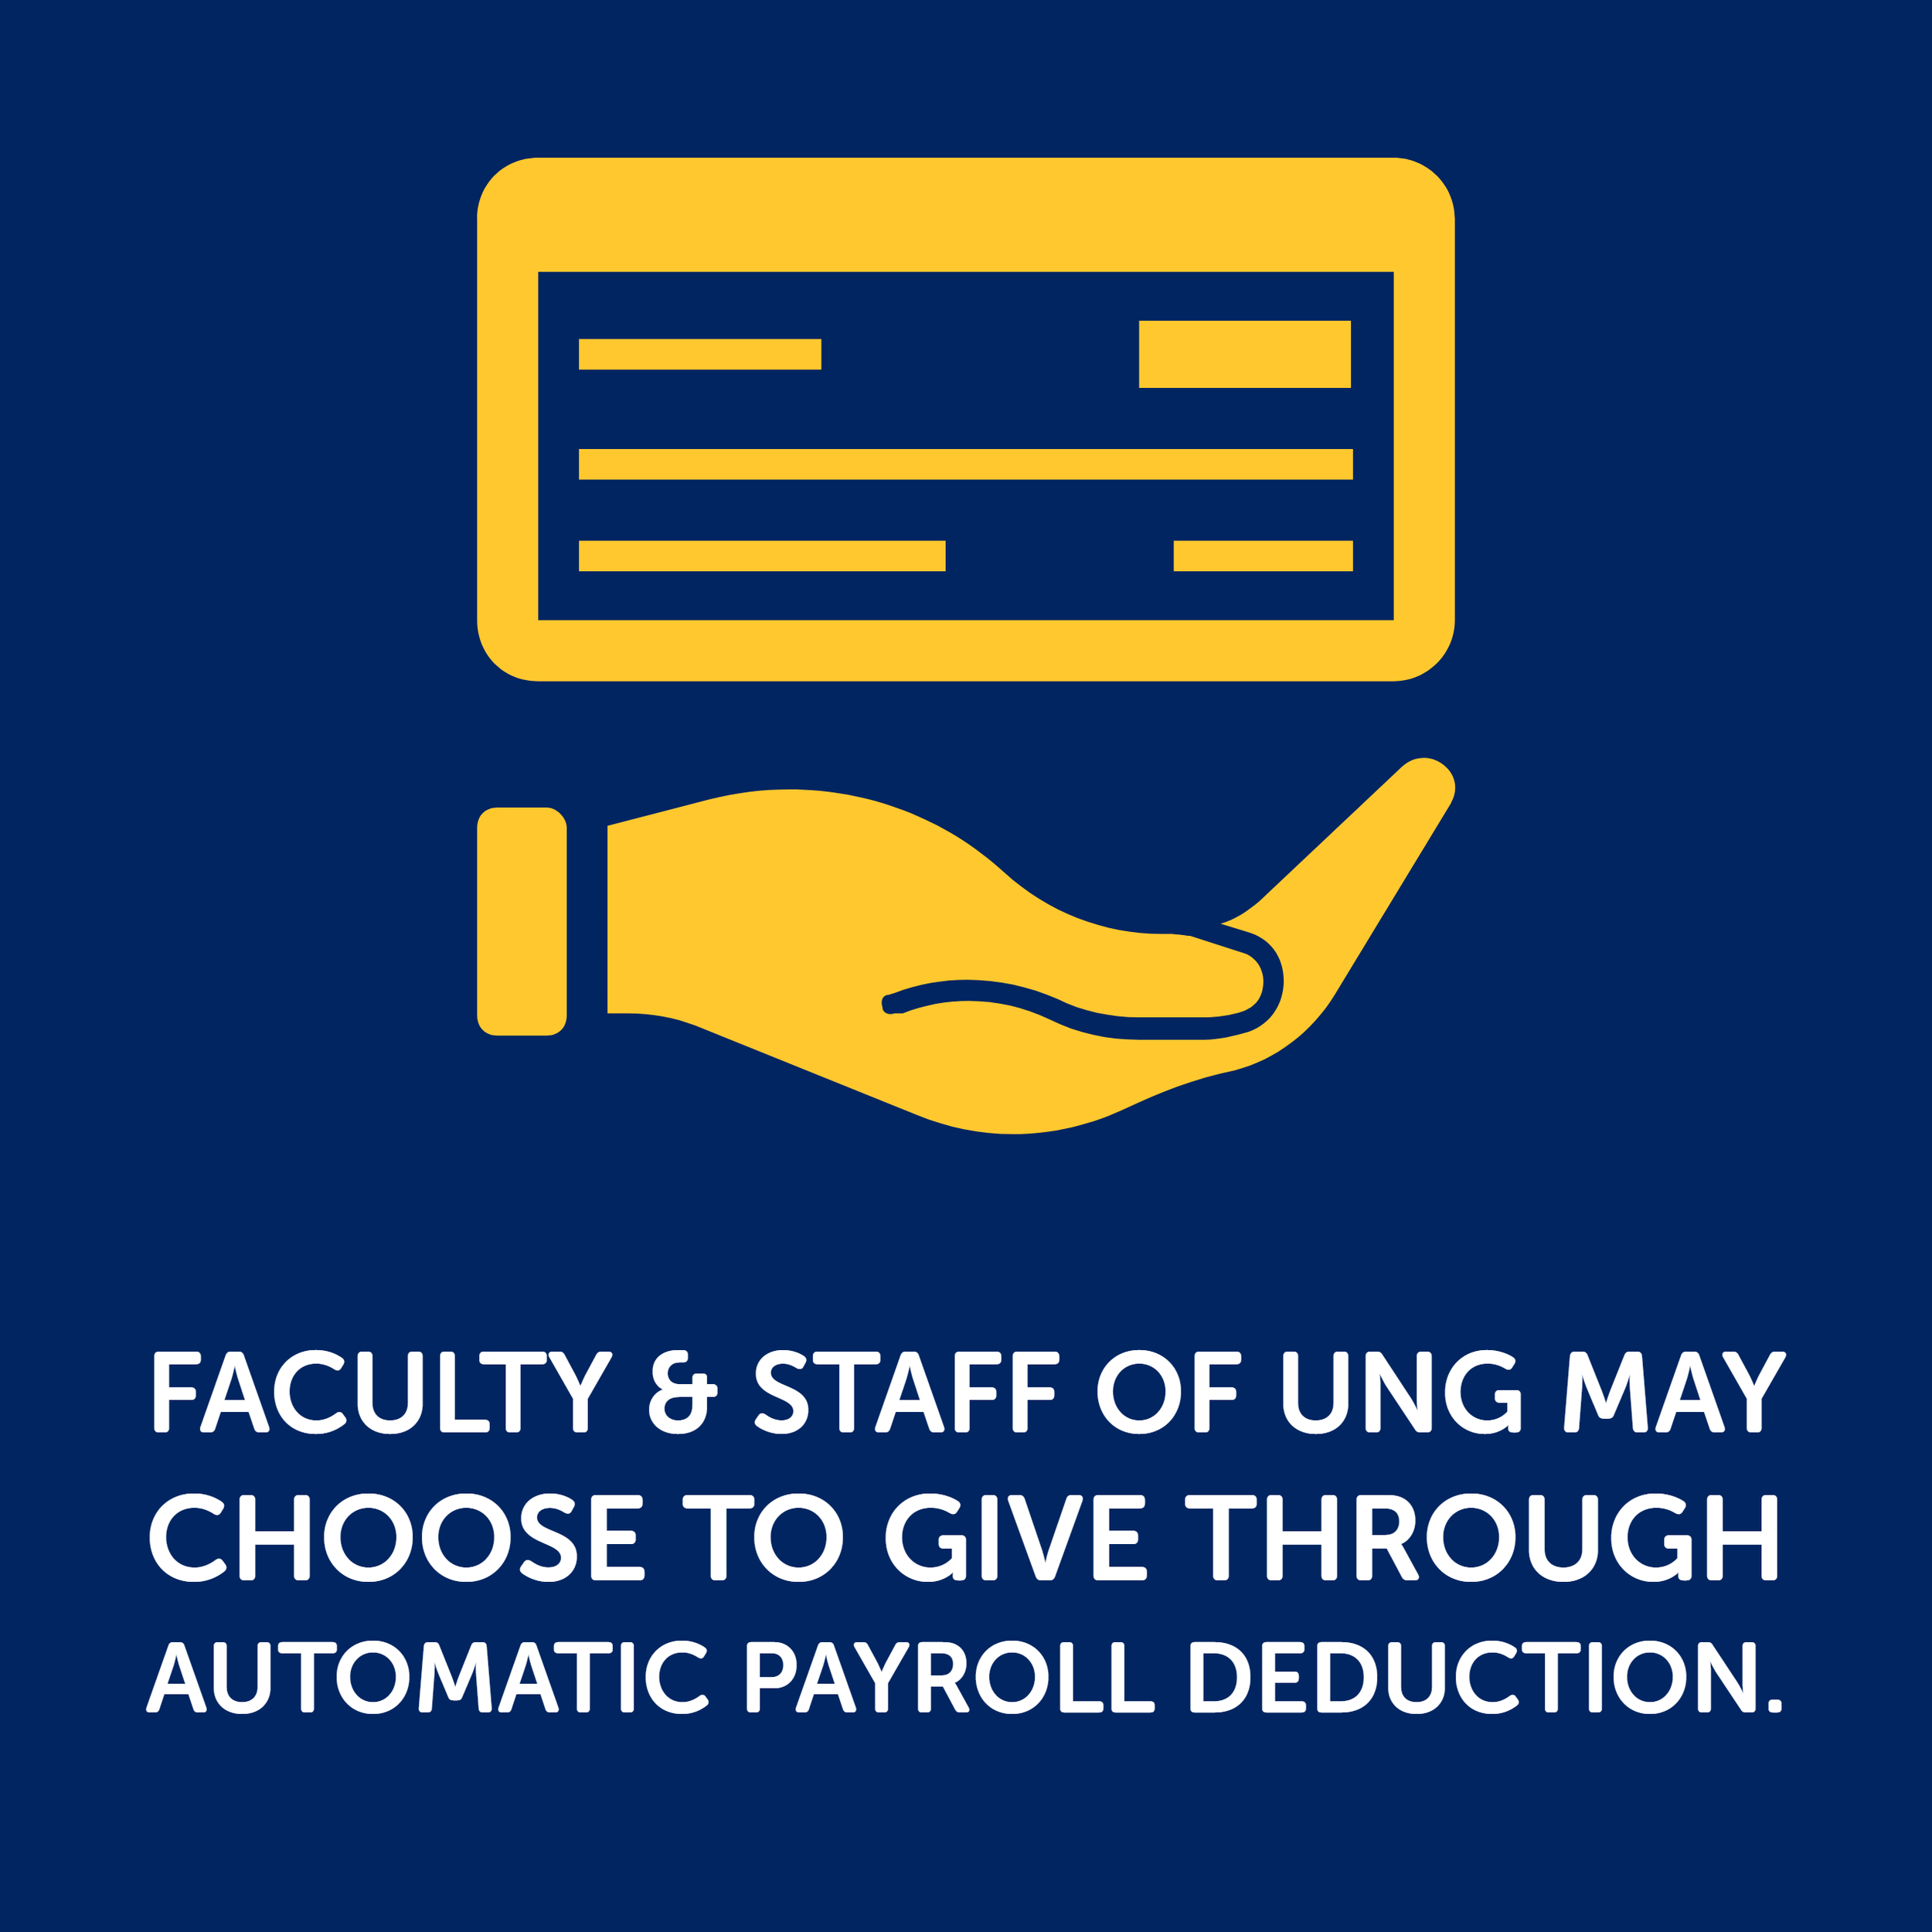 Faculty and staff of the University of North Georgia may choose to give through automatic payroll deduction.